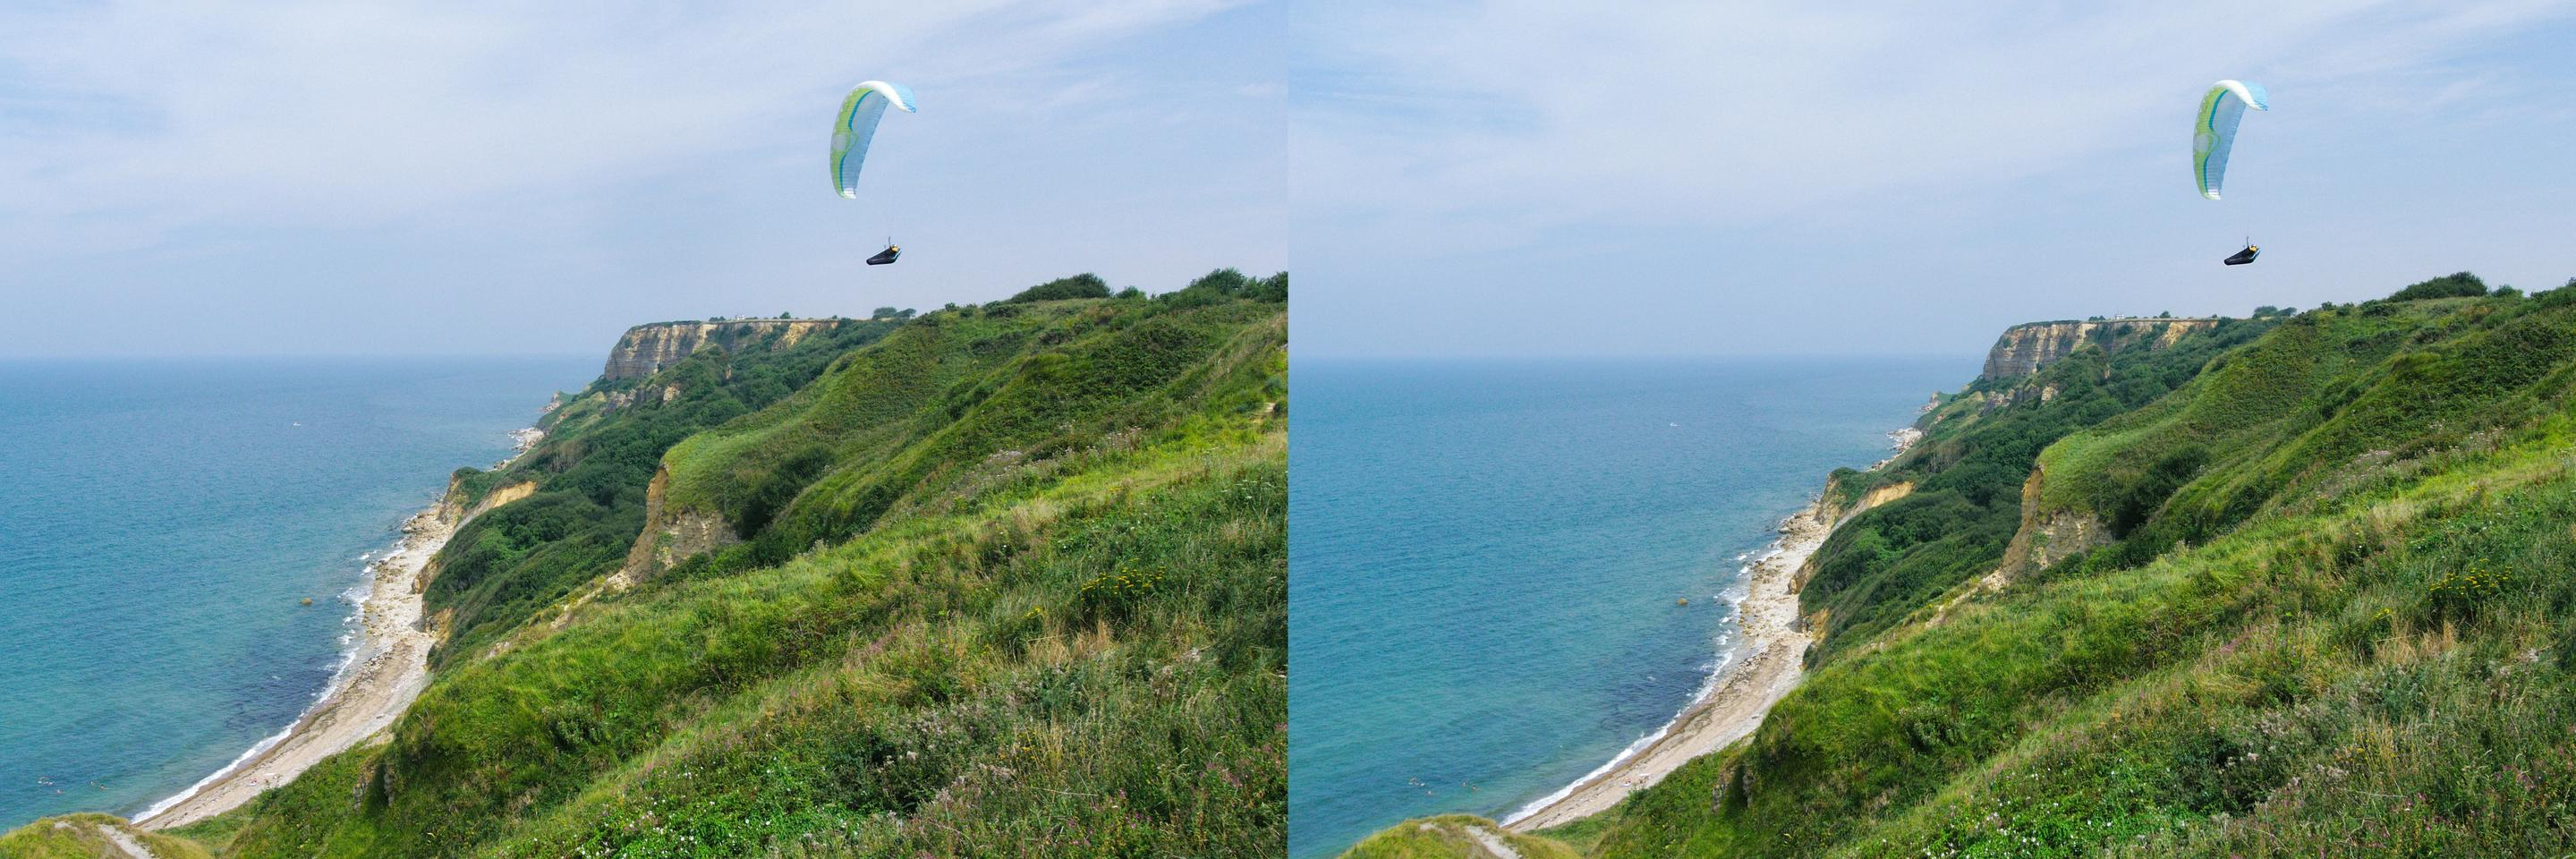 Paragliding at the coast